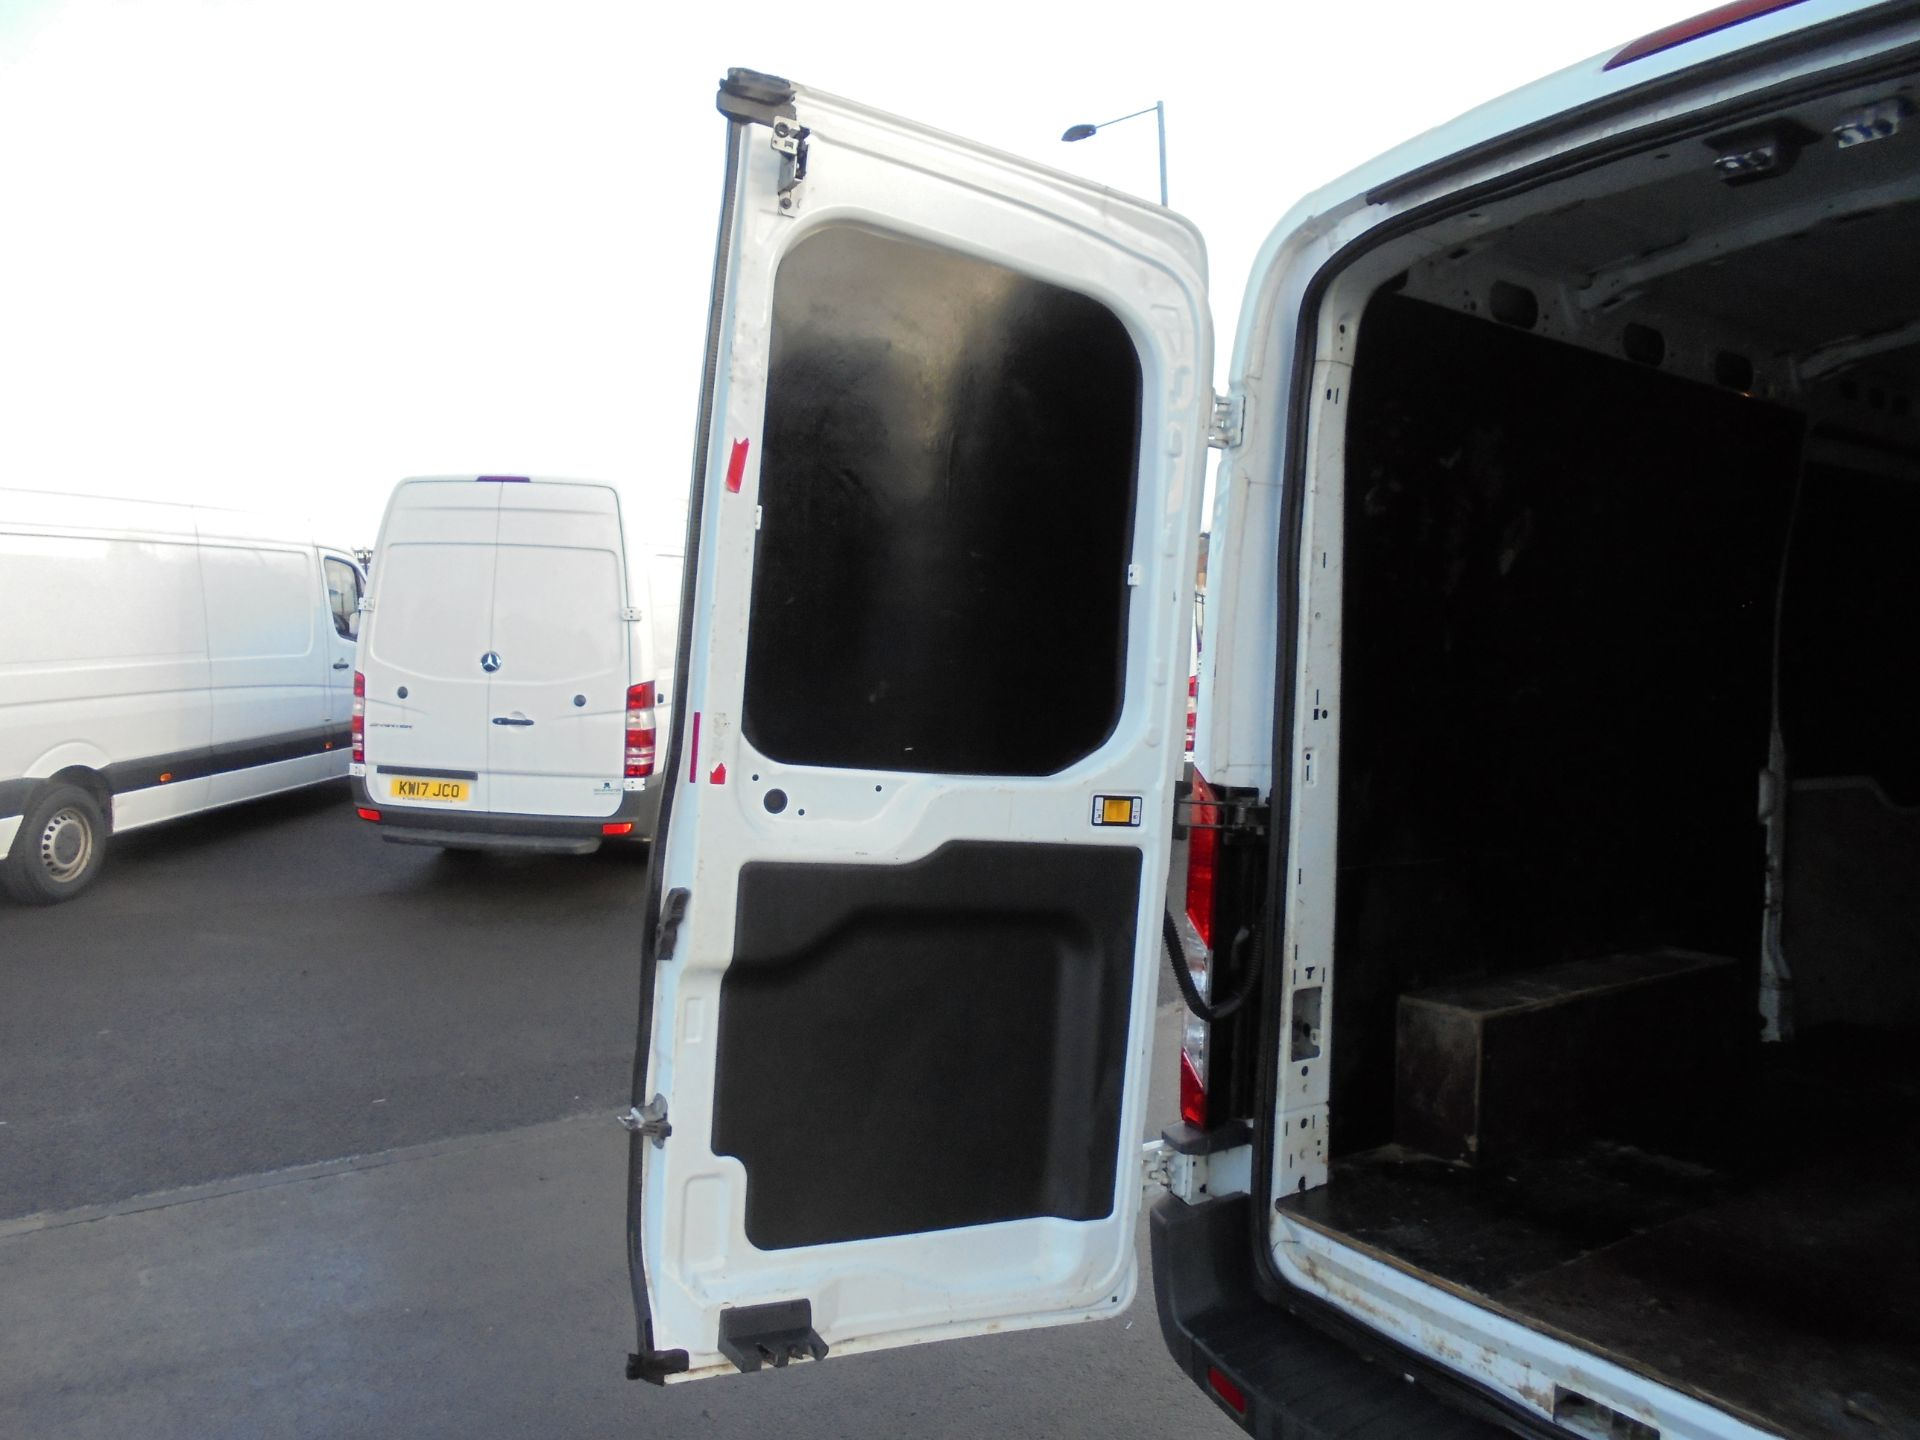 2016 Ford Transit 350 2.2 Tdci 125Ps L3 H2 Van Aftermarket Alarm and Security Locks (YB66WYX) Image 27